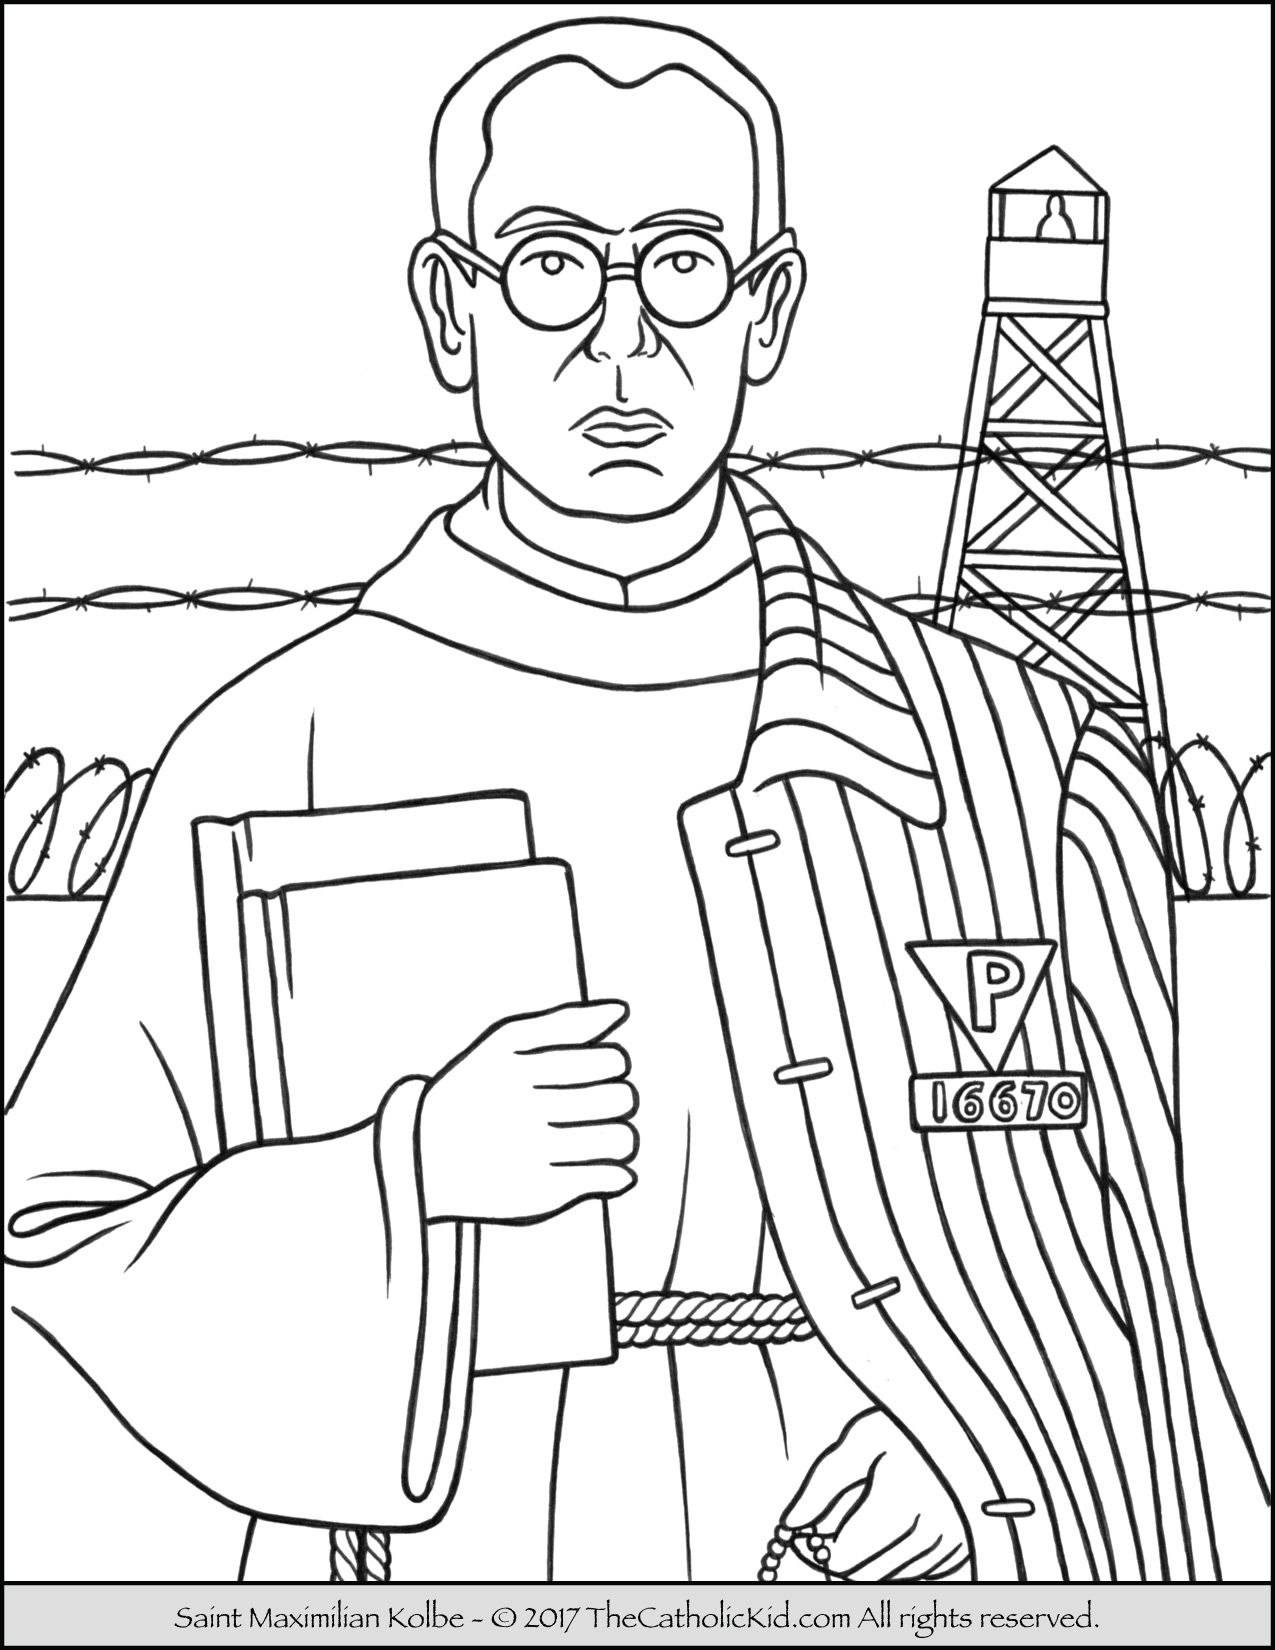 Pin by TheCatholicKid.com on Catholic Coloring Pages for ...